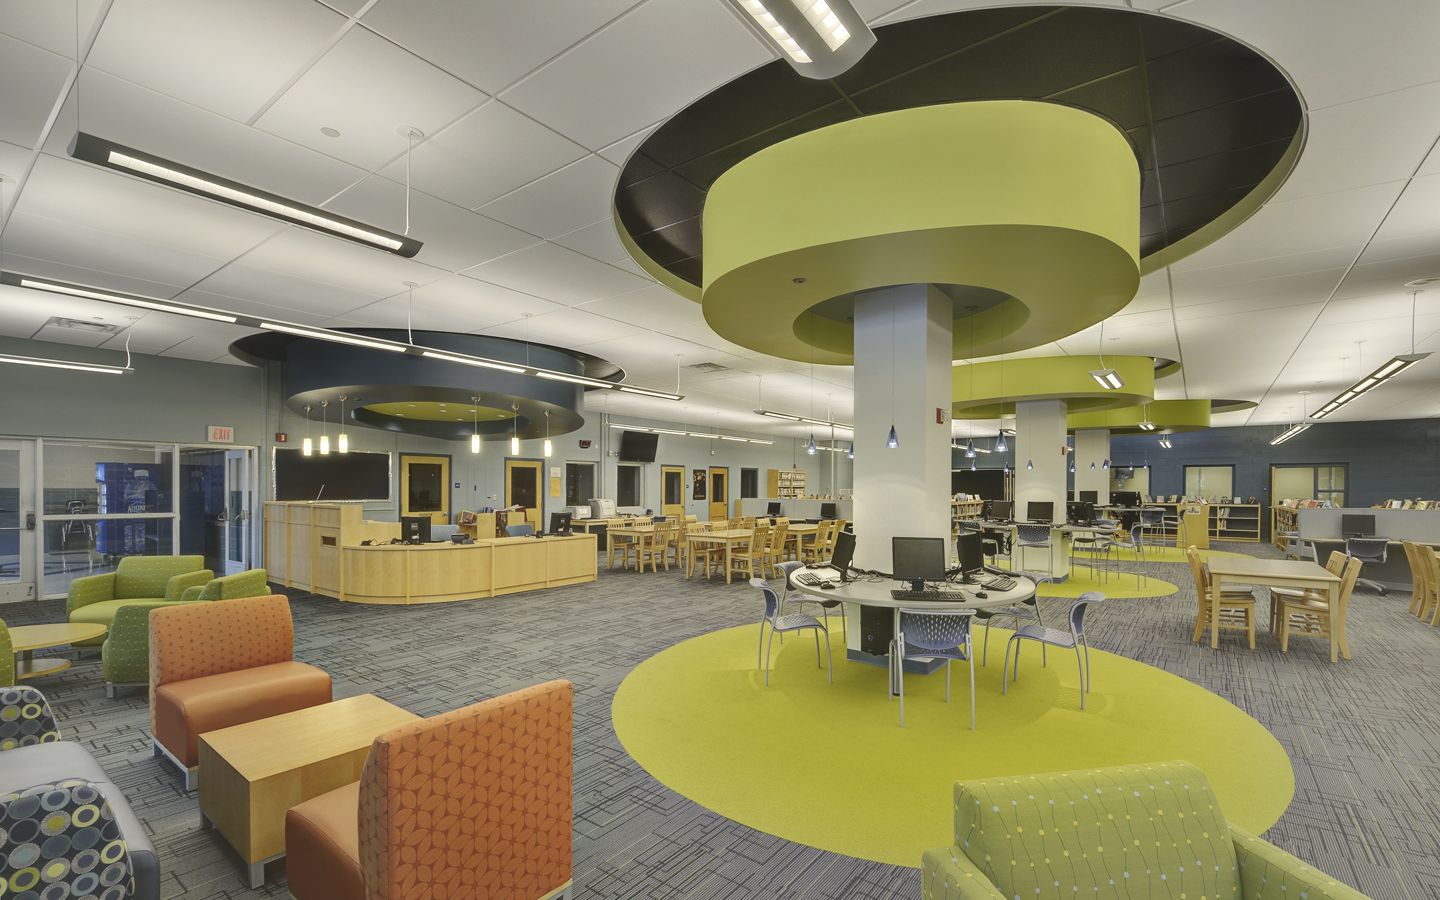 1000 Images About School On Pinterest School Library Design Public Library Design Library Furniture Design